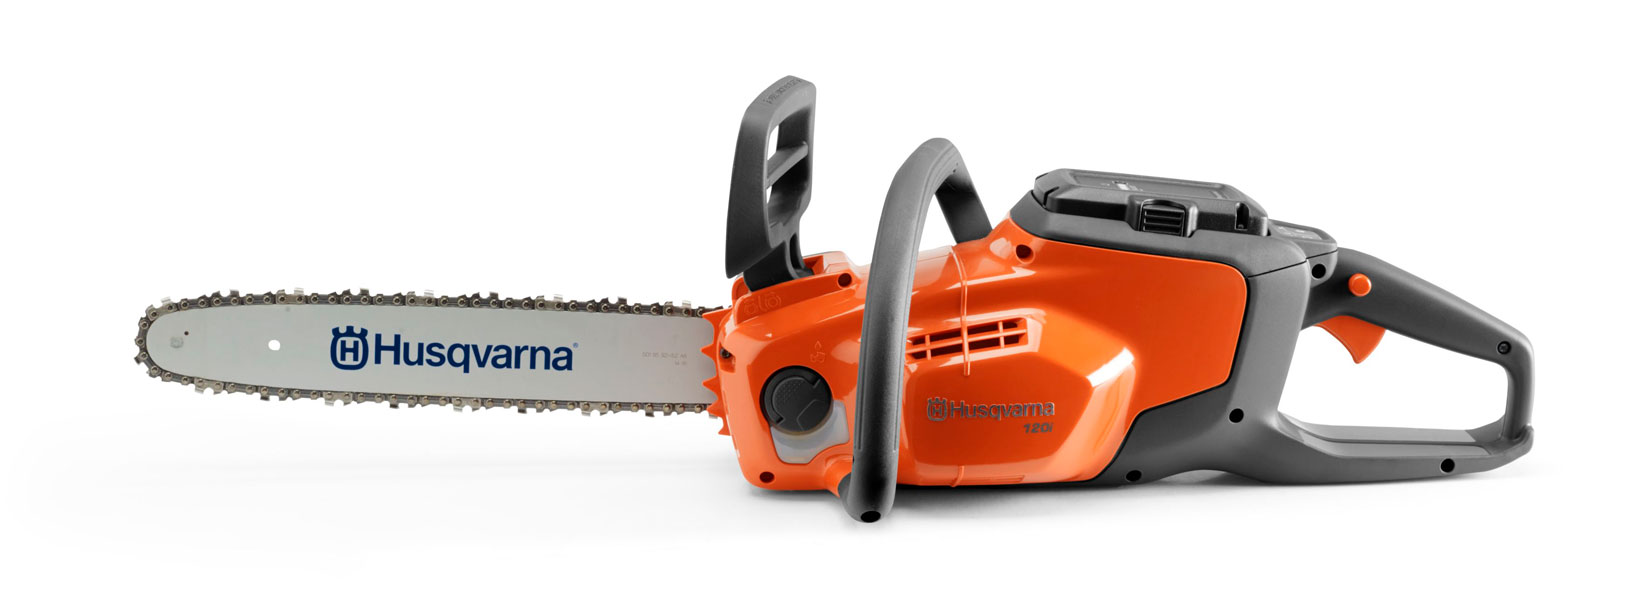 Husqvarna 120i Battery Operated Chainsaws Galway